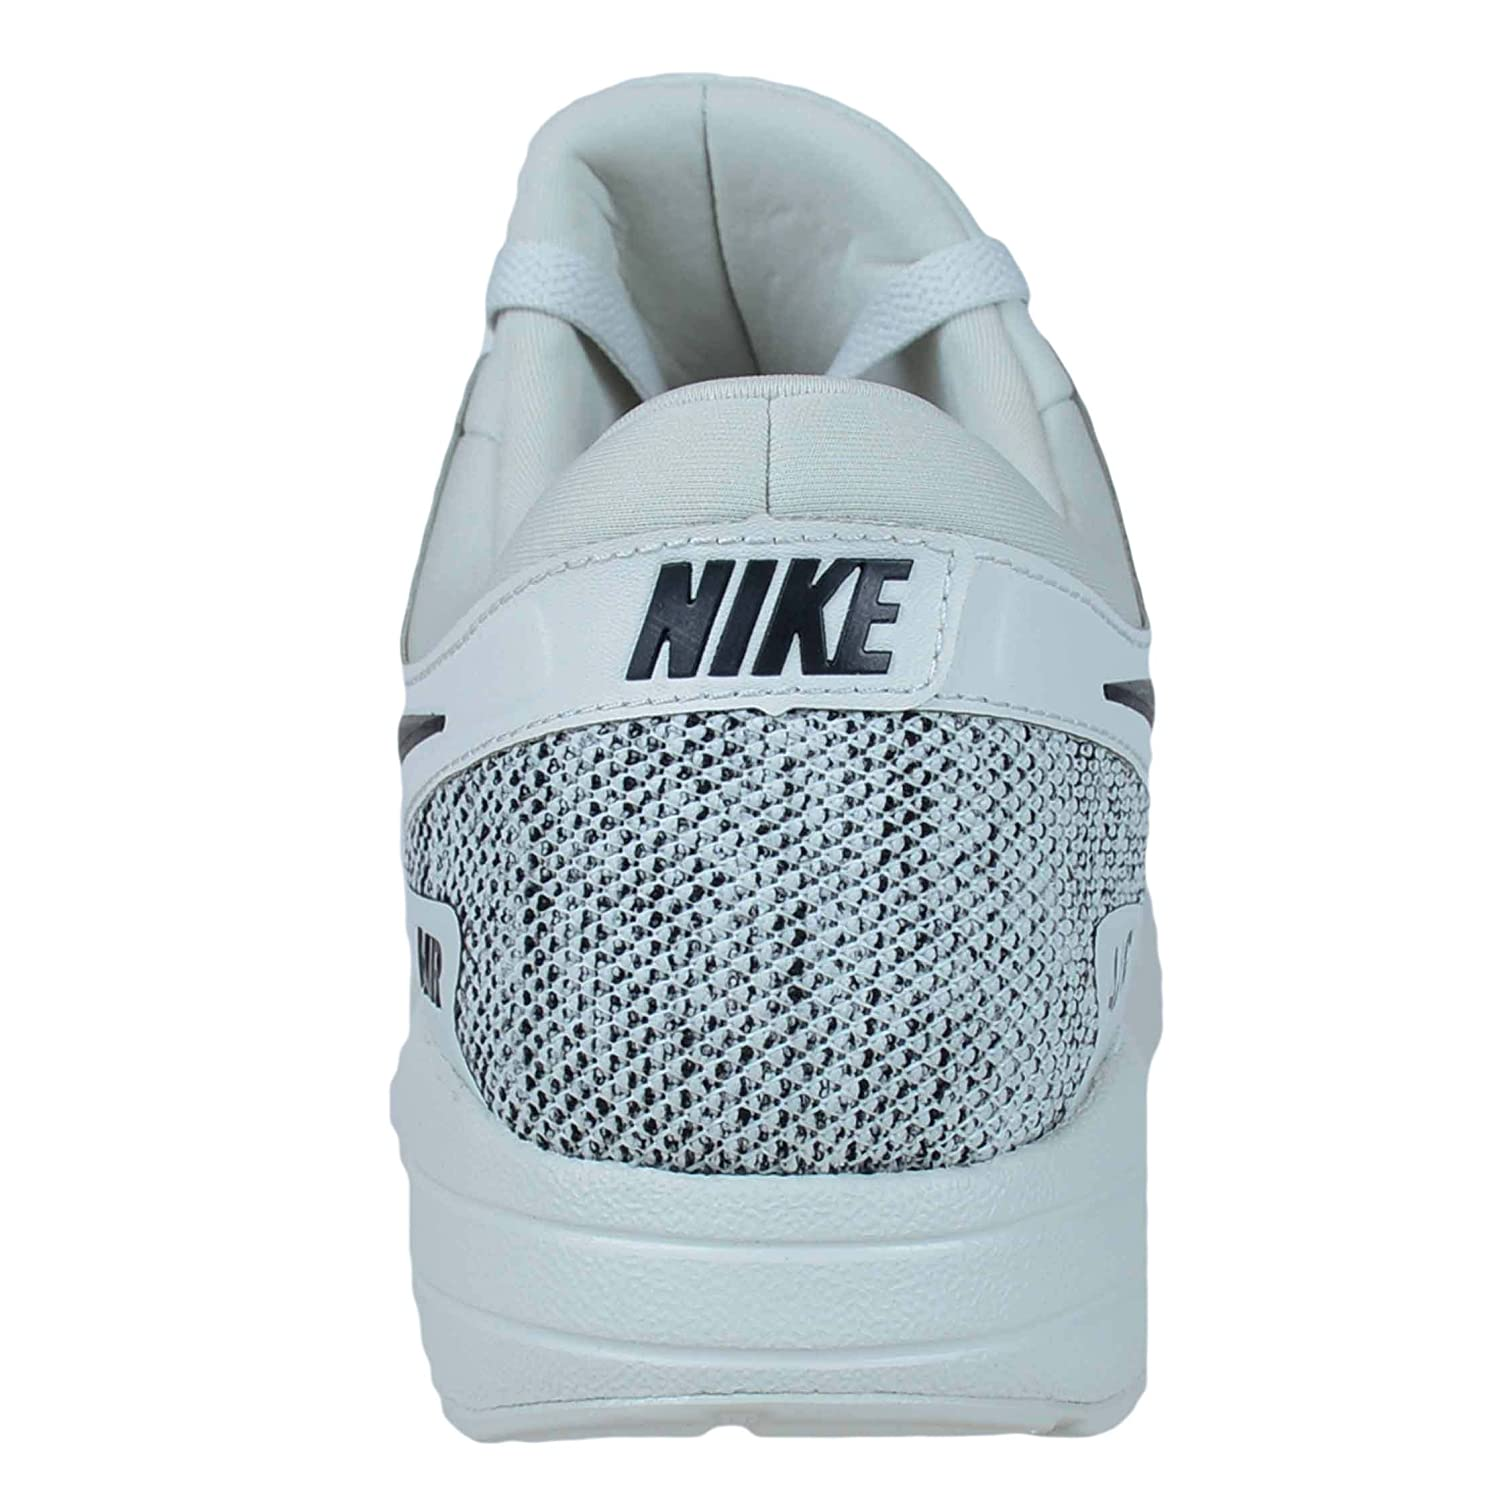 Nike Mens Air Max Zero SE Running Knit Athletic Shoes